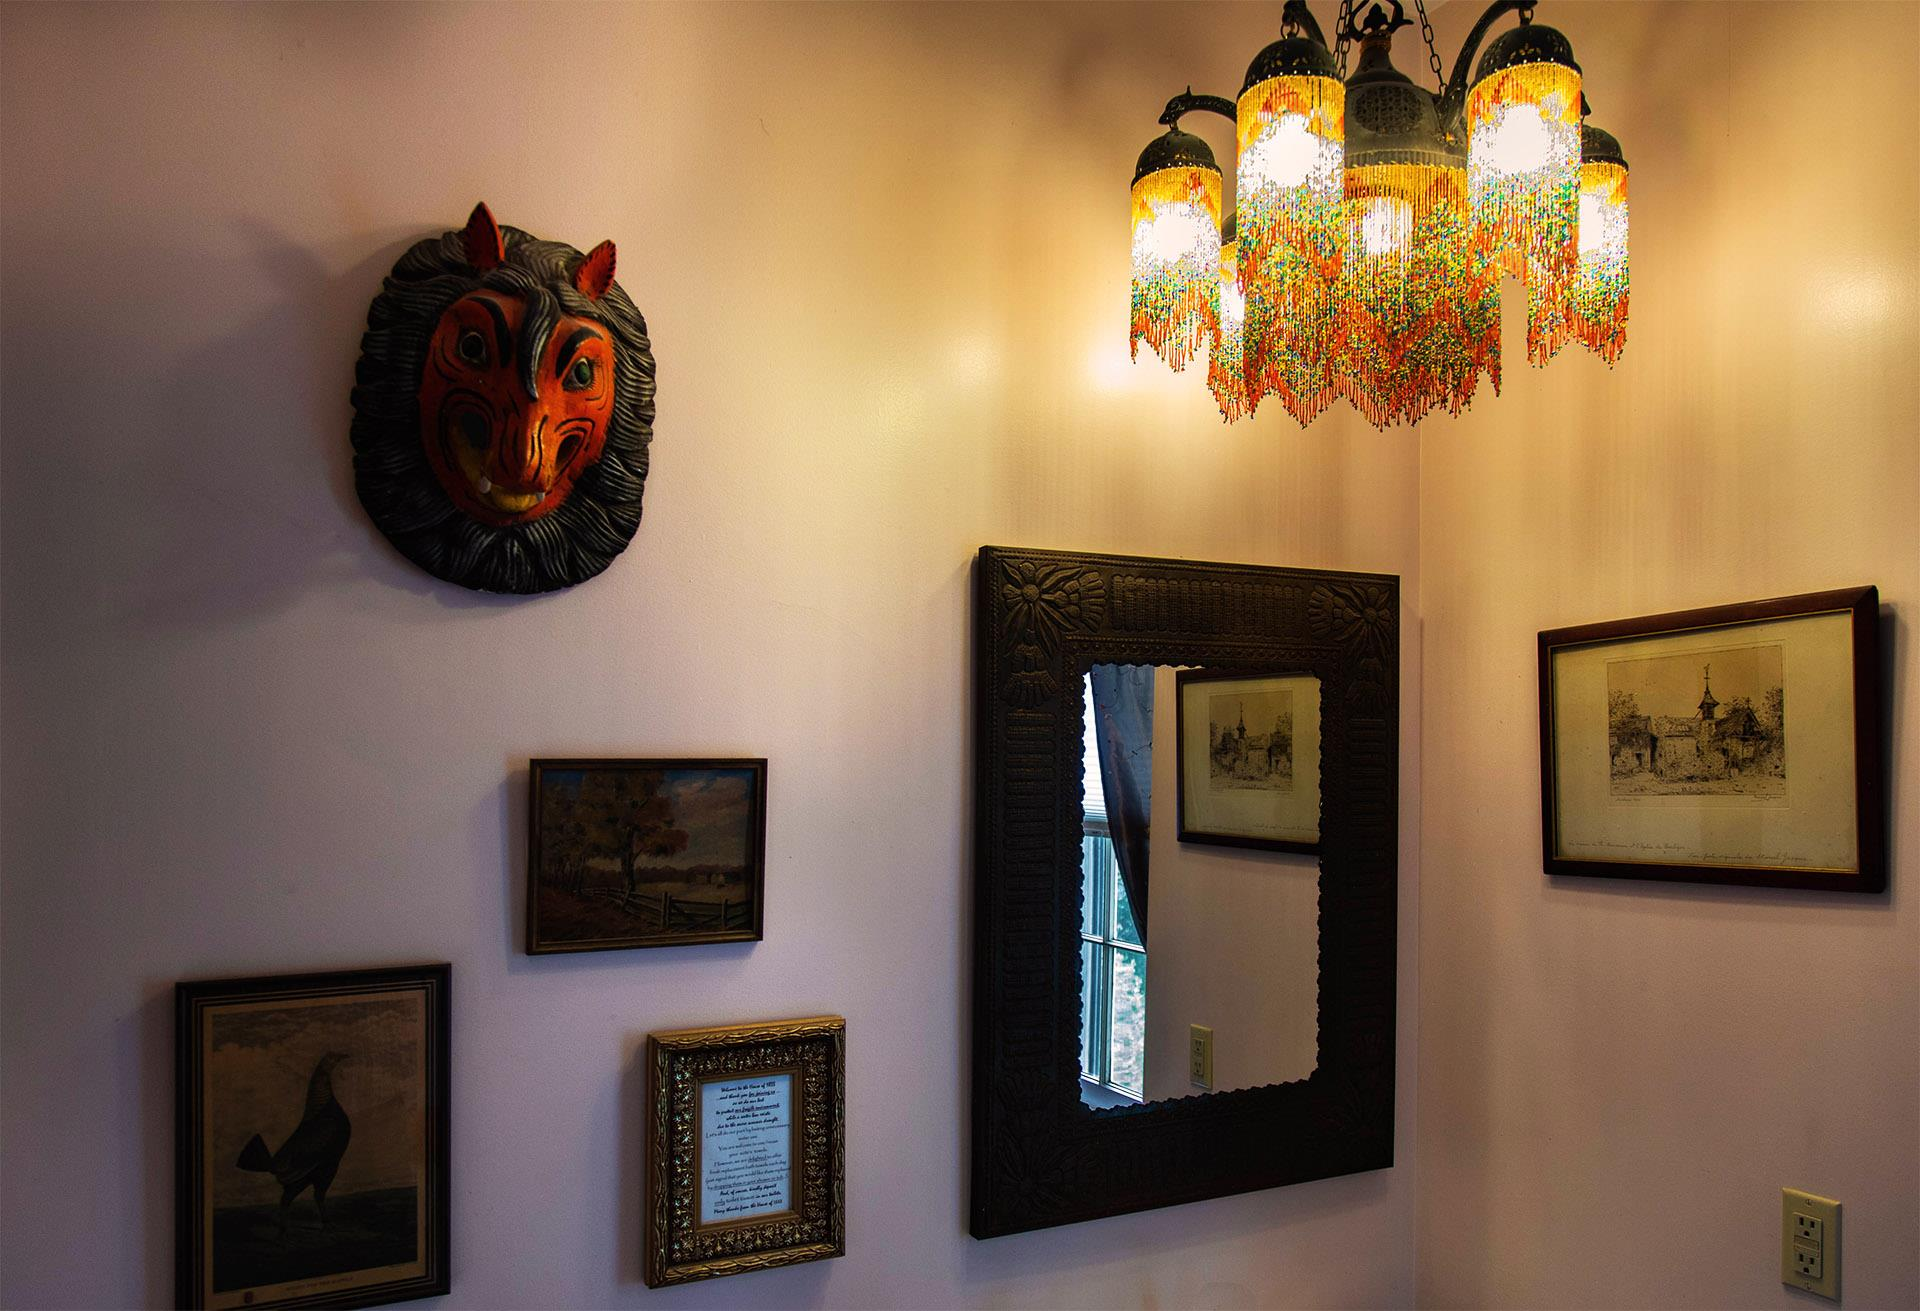 wall-with-antique-mask-and-pictures.jpg